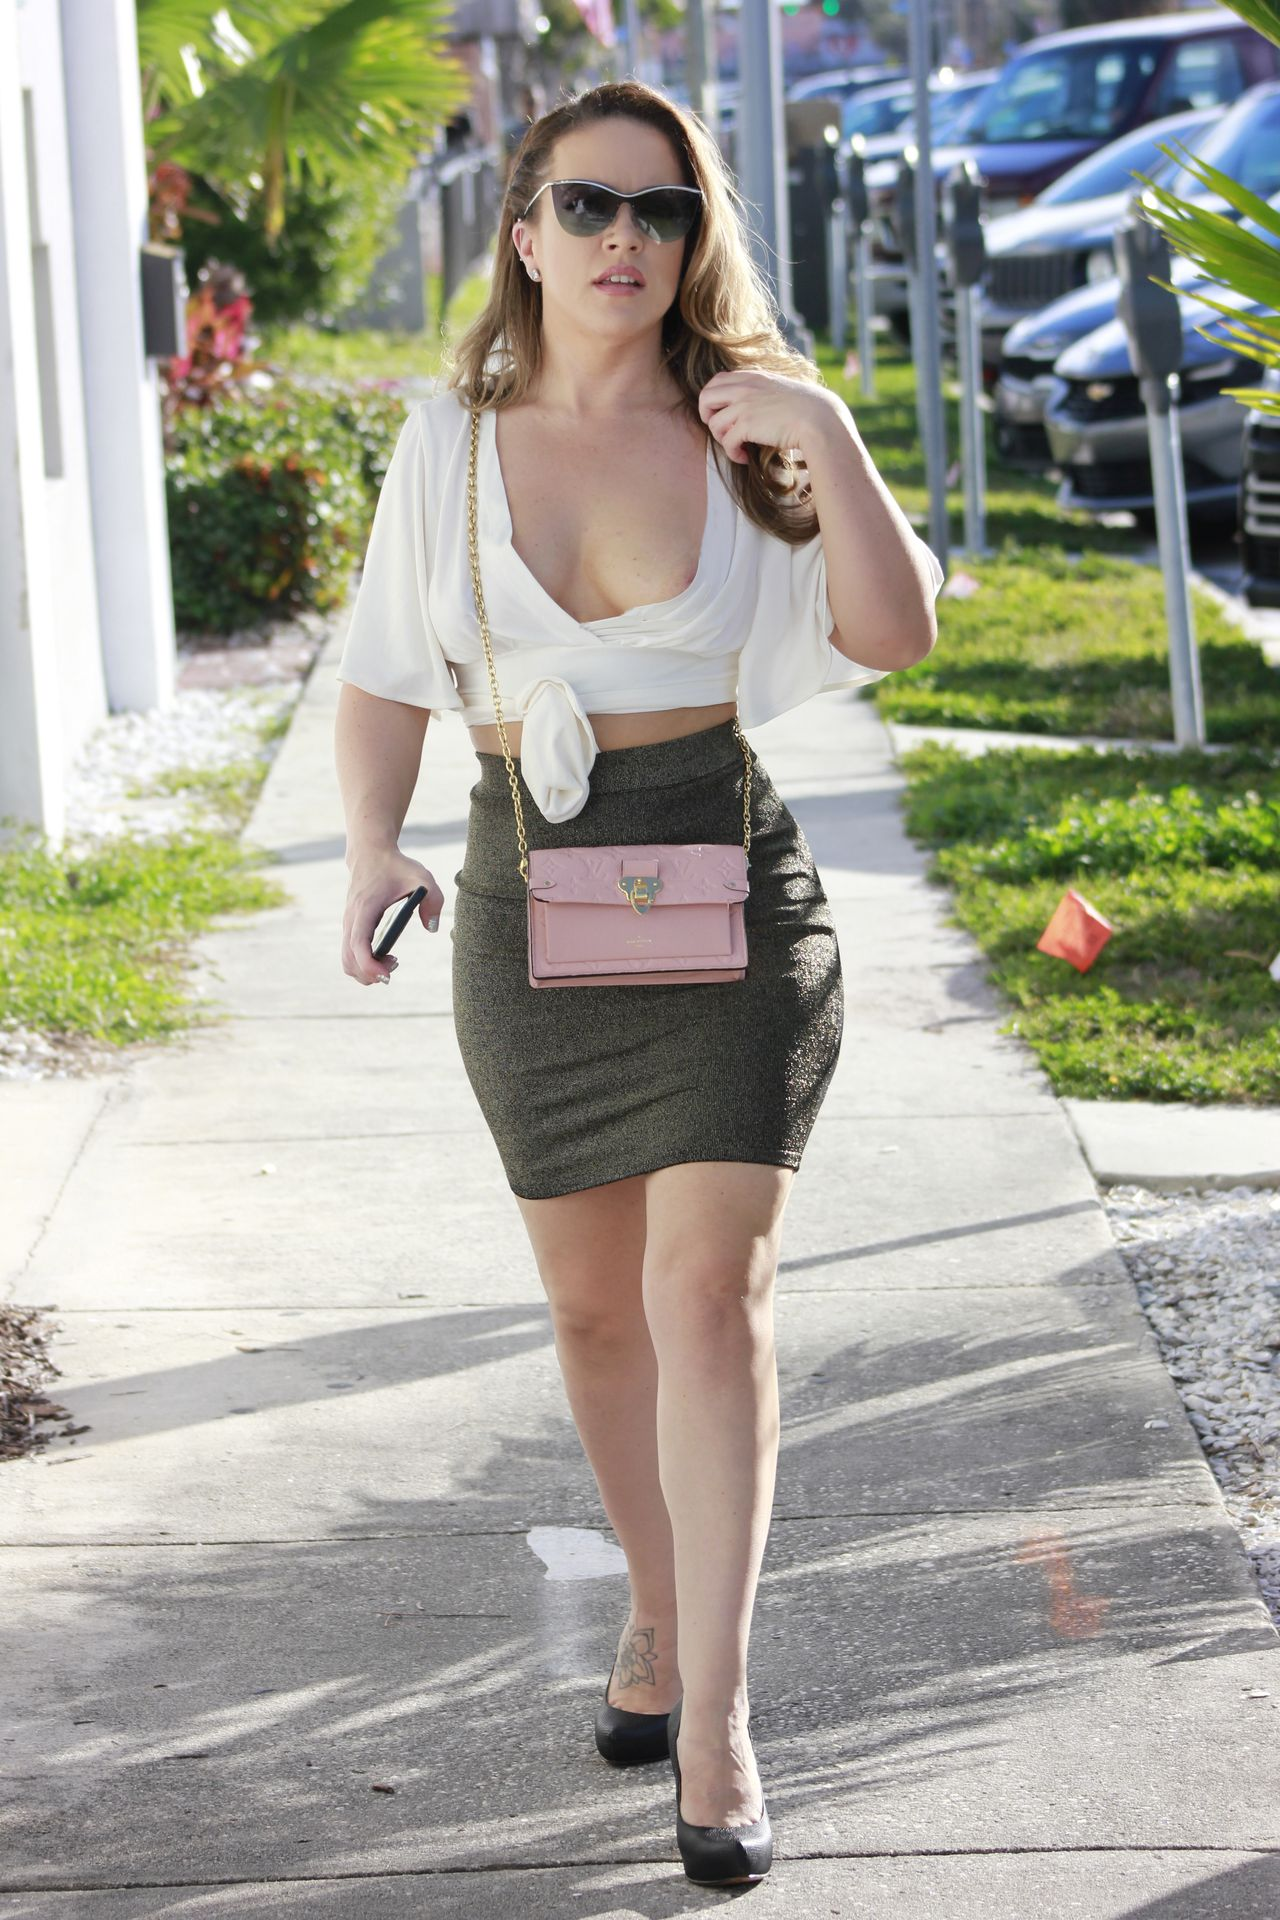 Carmen Valentina Barely Contains Her Curves Out And About In La 0009